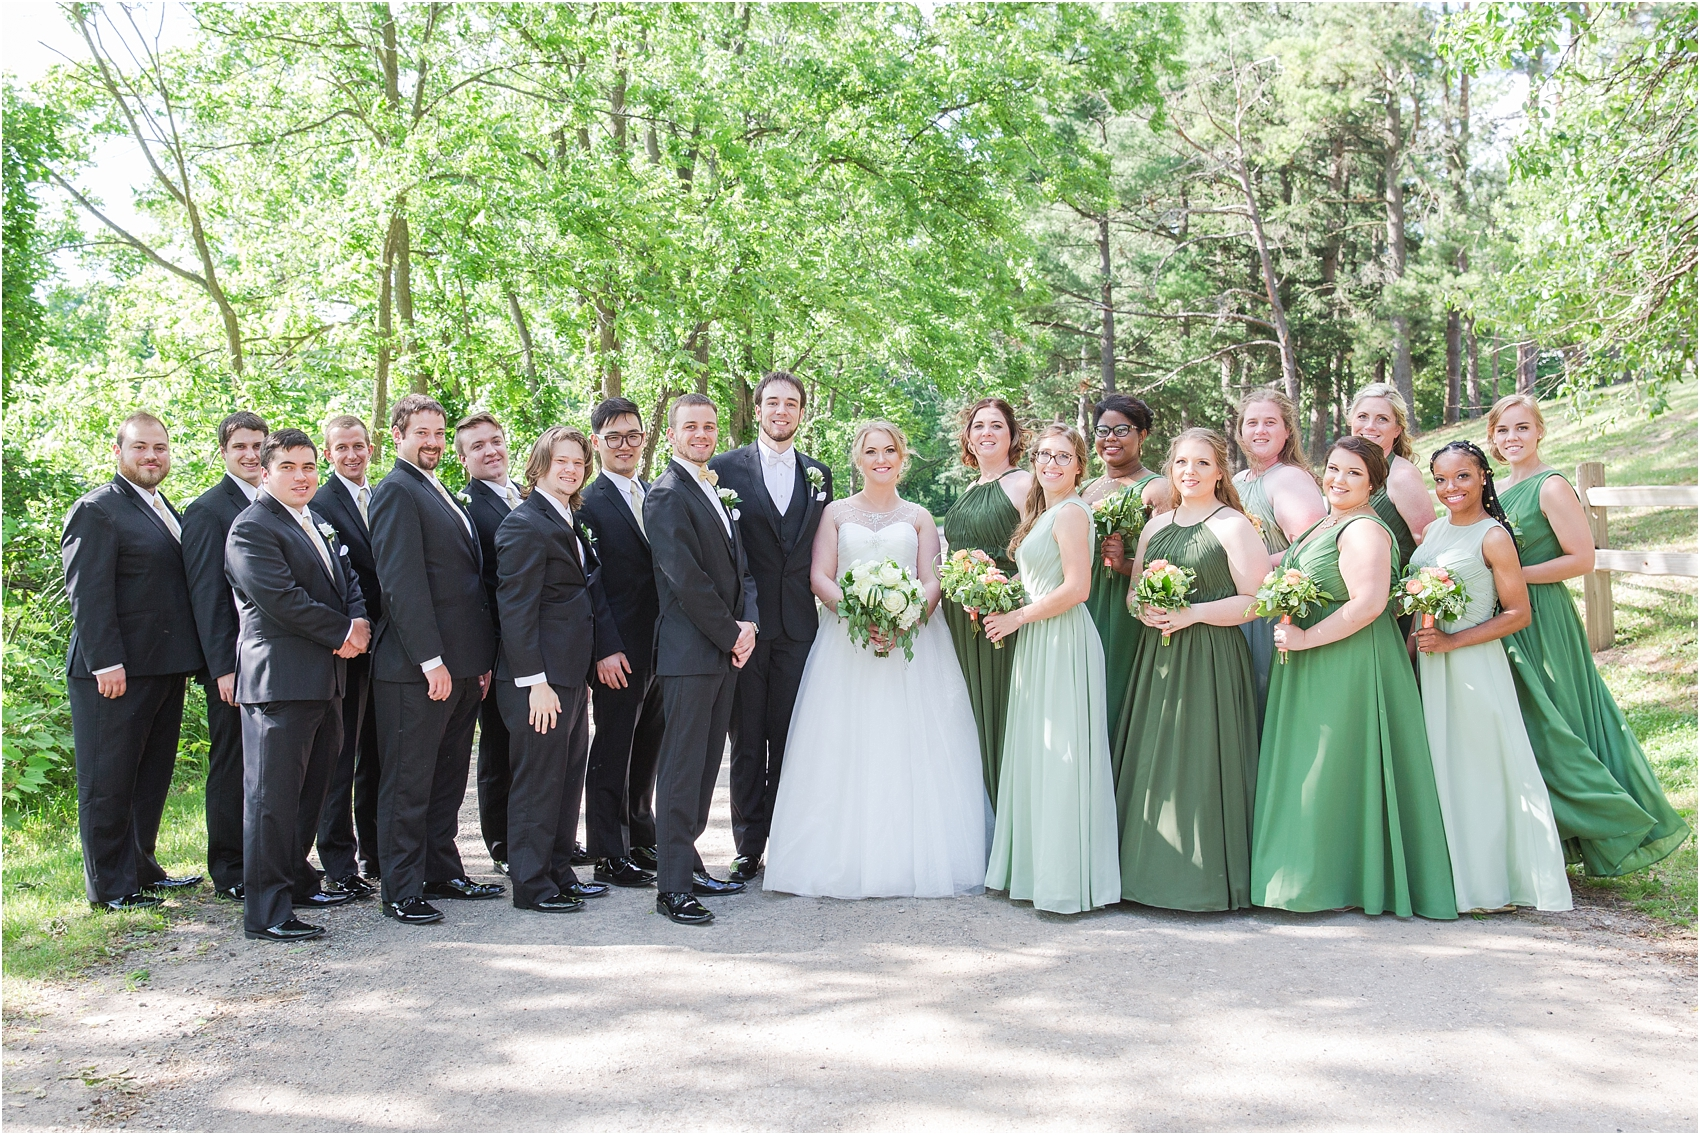 lord-of-the-rings-inspired-wedding-photos-at-crystal-gardens-in-howell-mi-by-courtney-carolyn-photography_0056.jpg